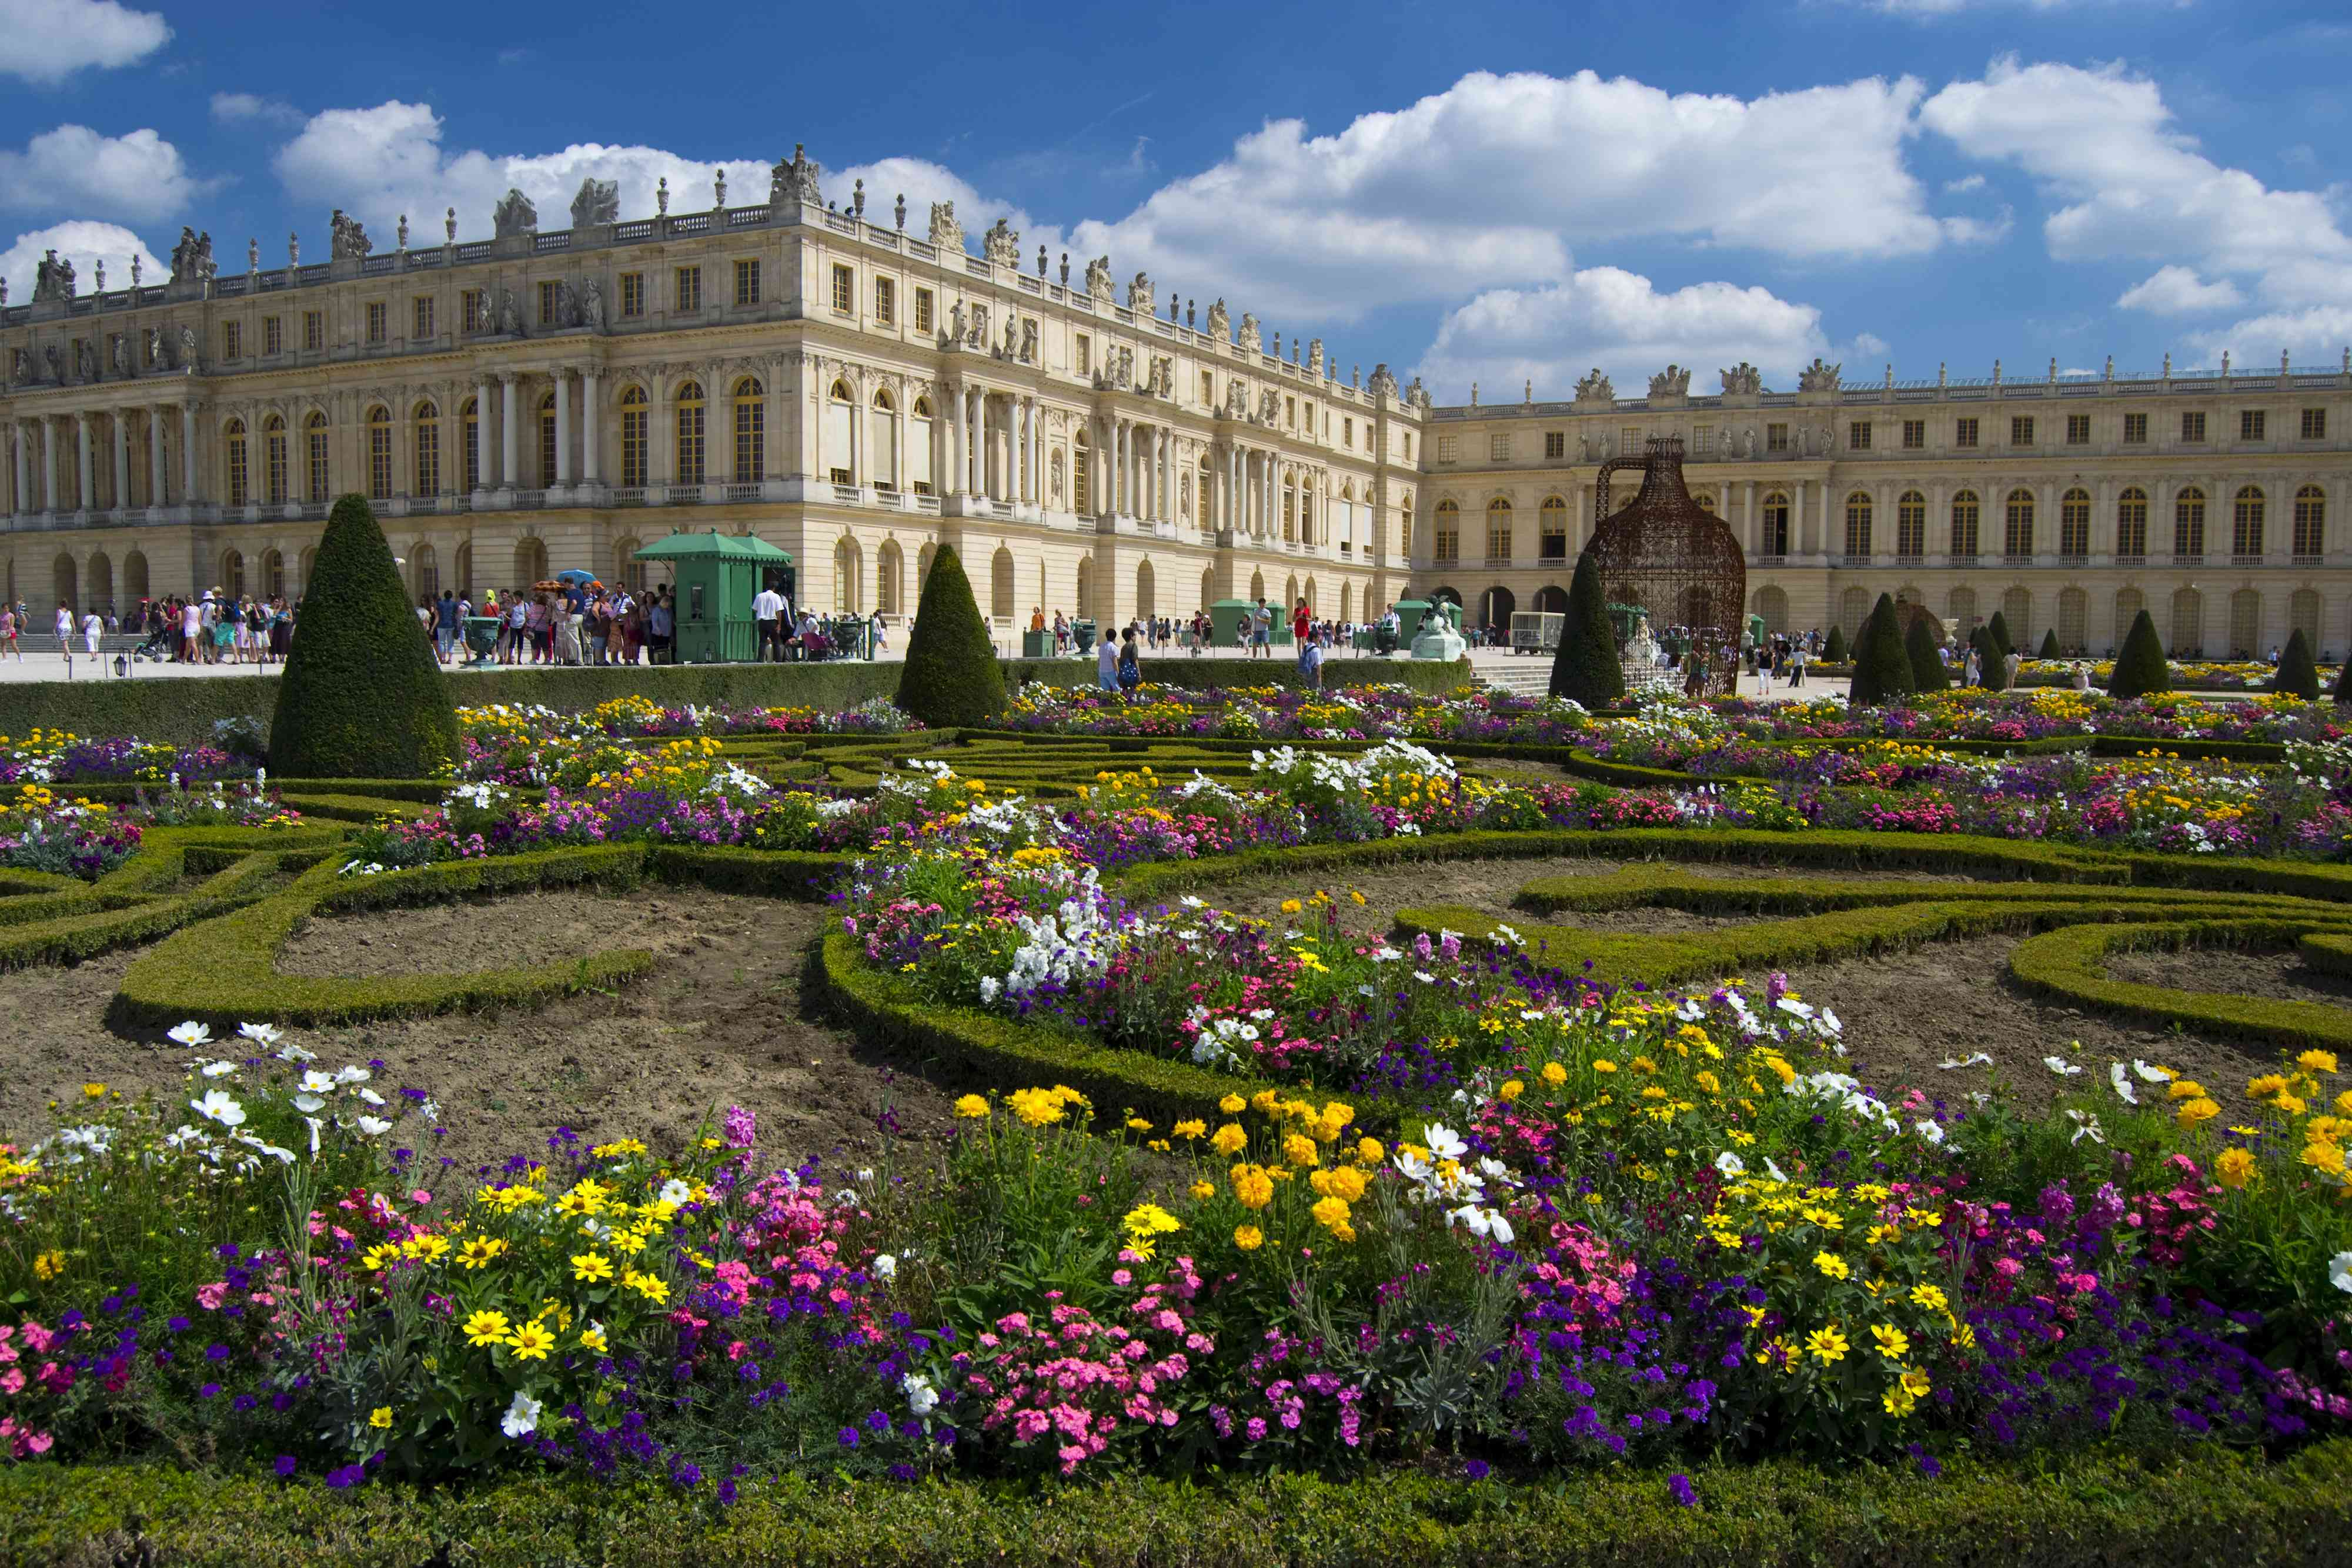 The Palace and Gardens at Versailles, France